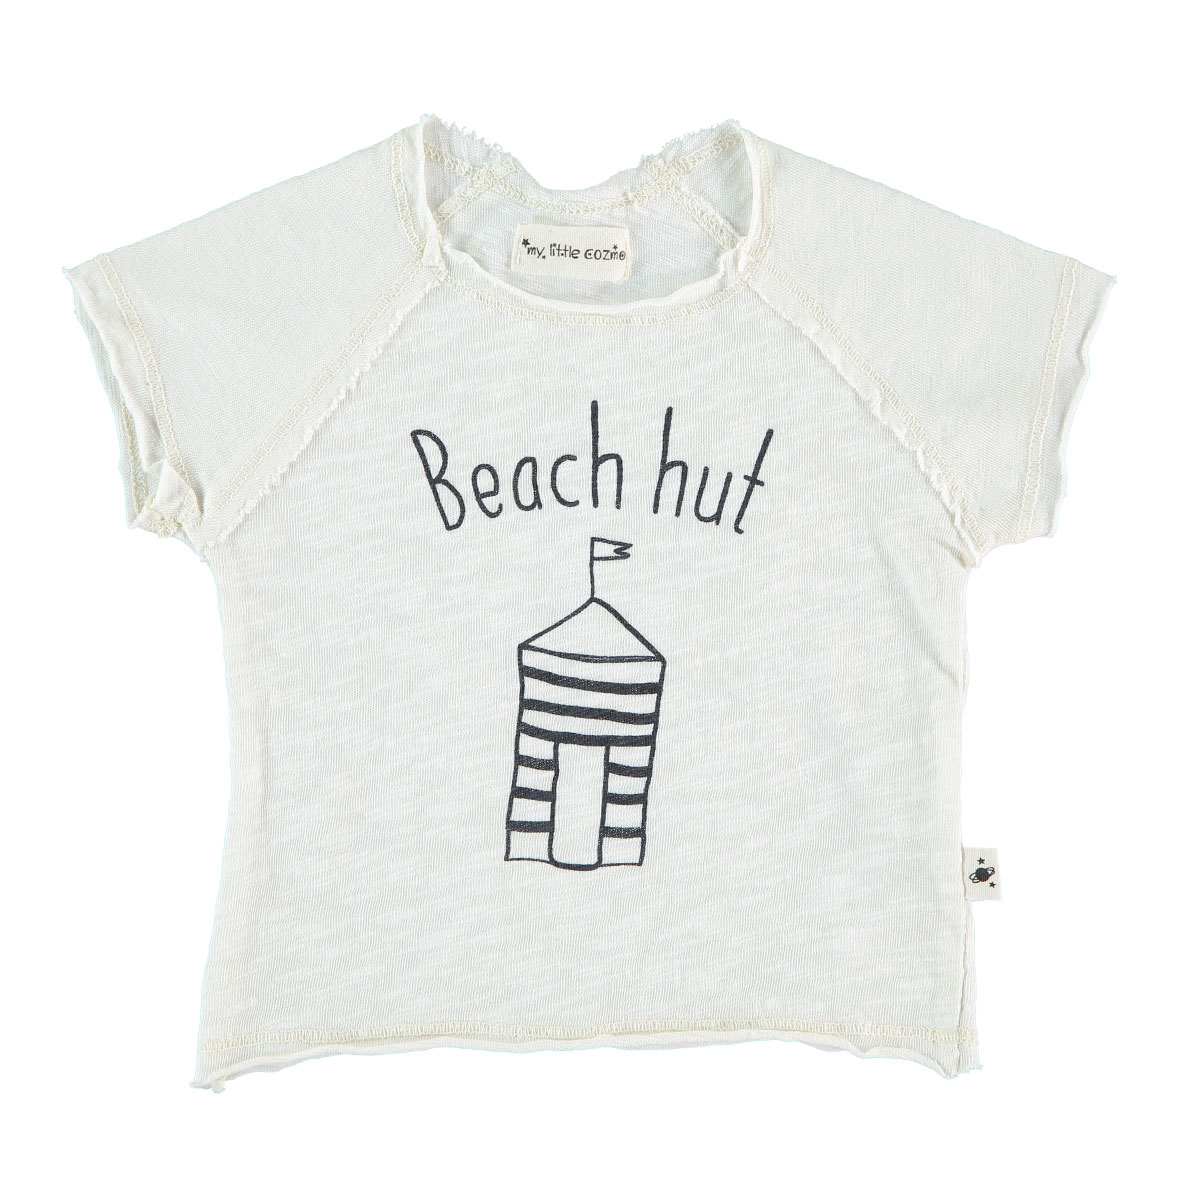 My Little Cozmo Flame T-Shrit in White with Beach Hut Print